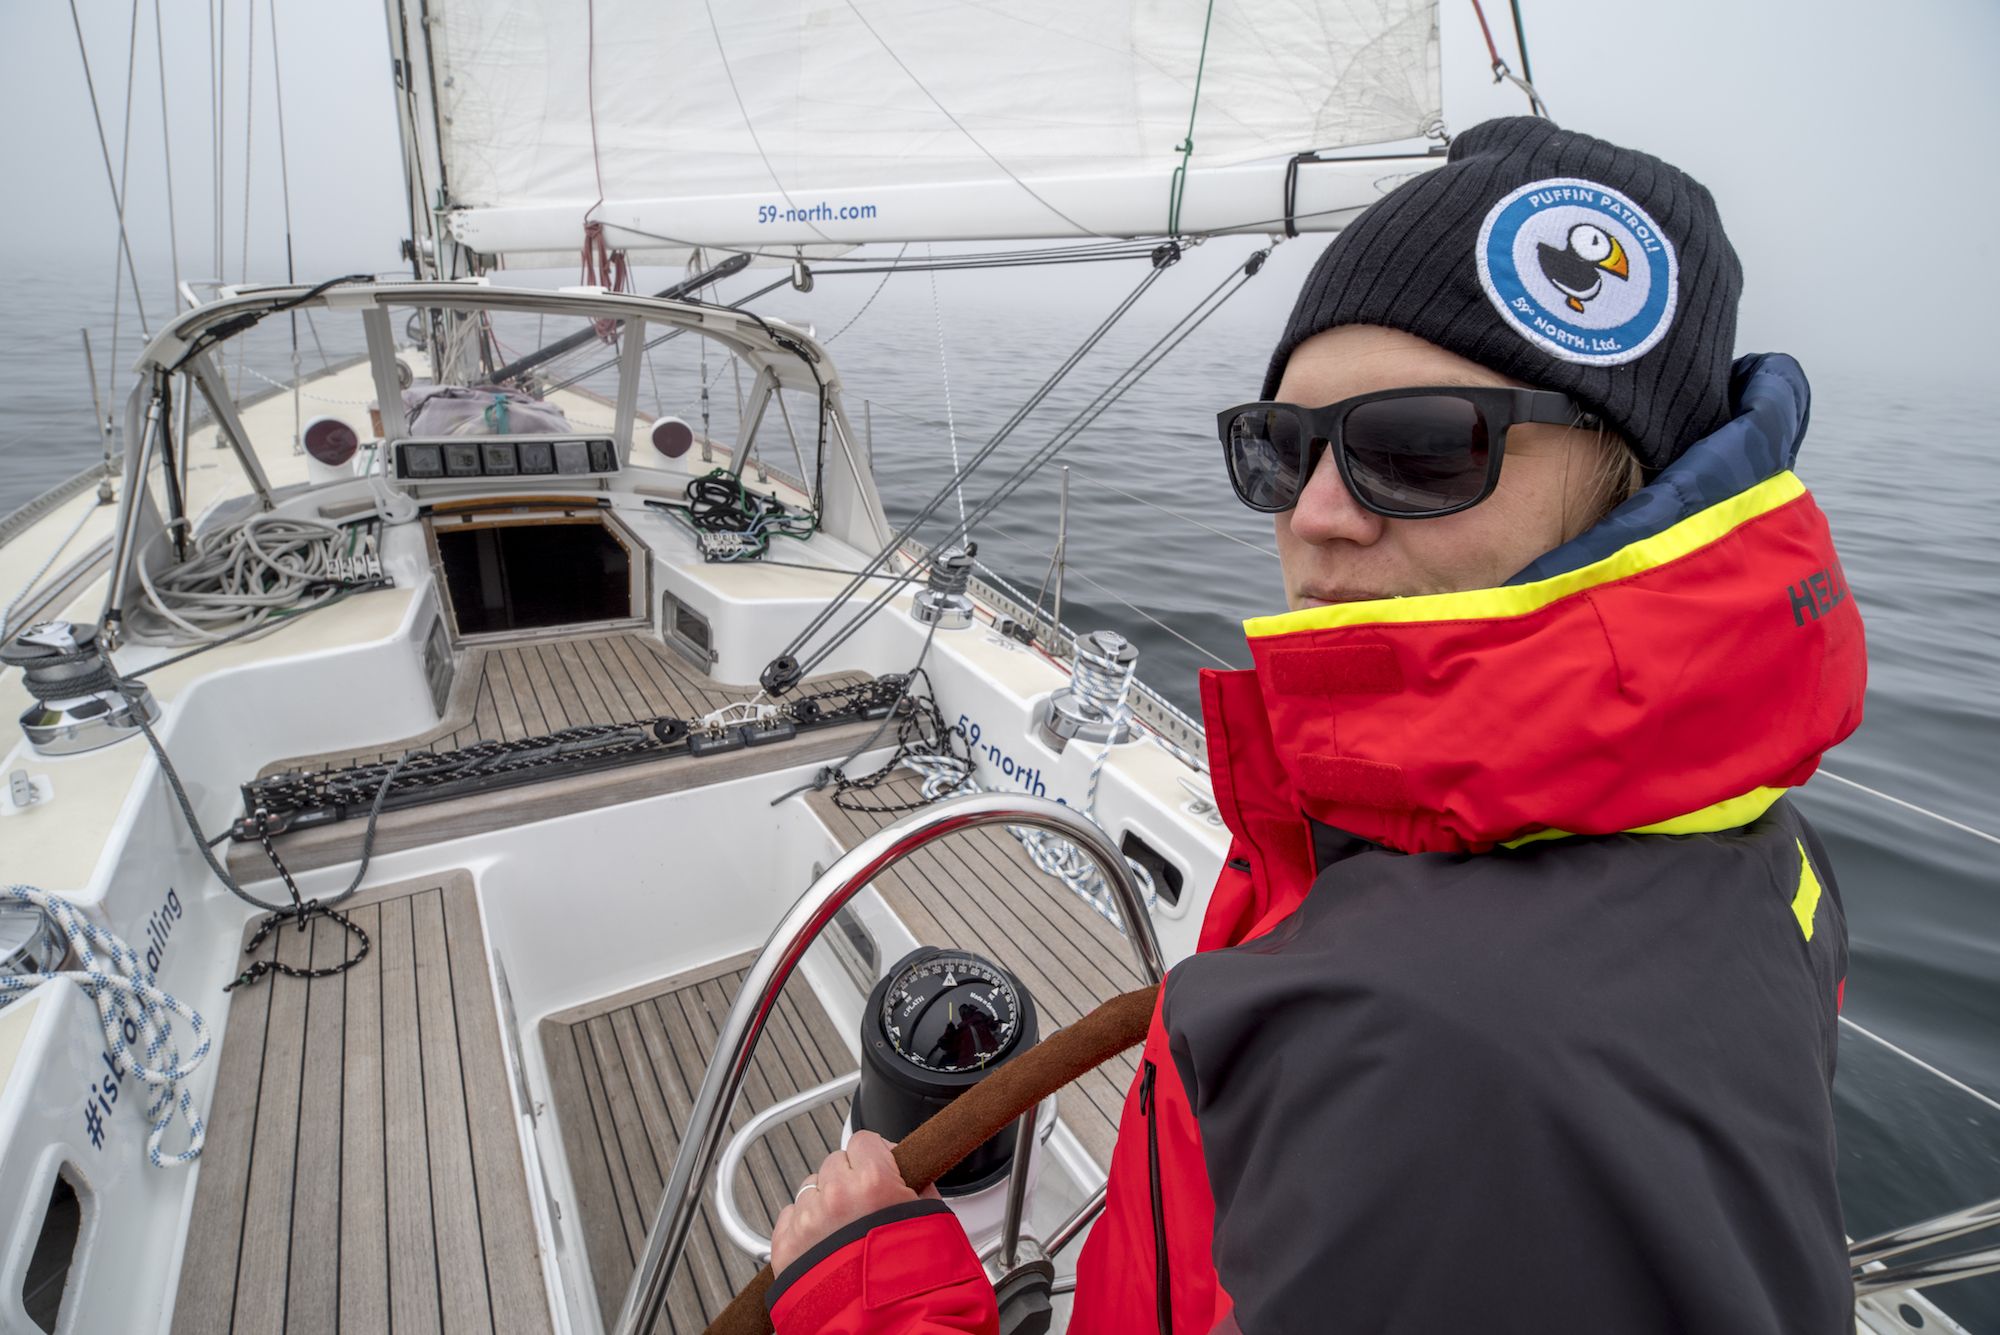 Mia at the helm of Isbjorn's first shakedown sail on April 20 in Sweden.